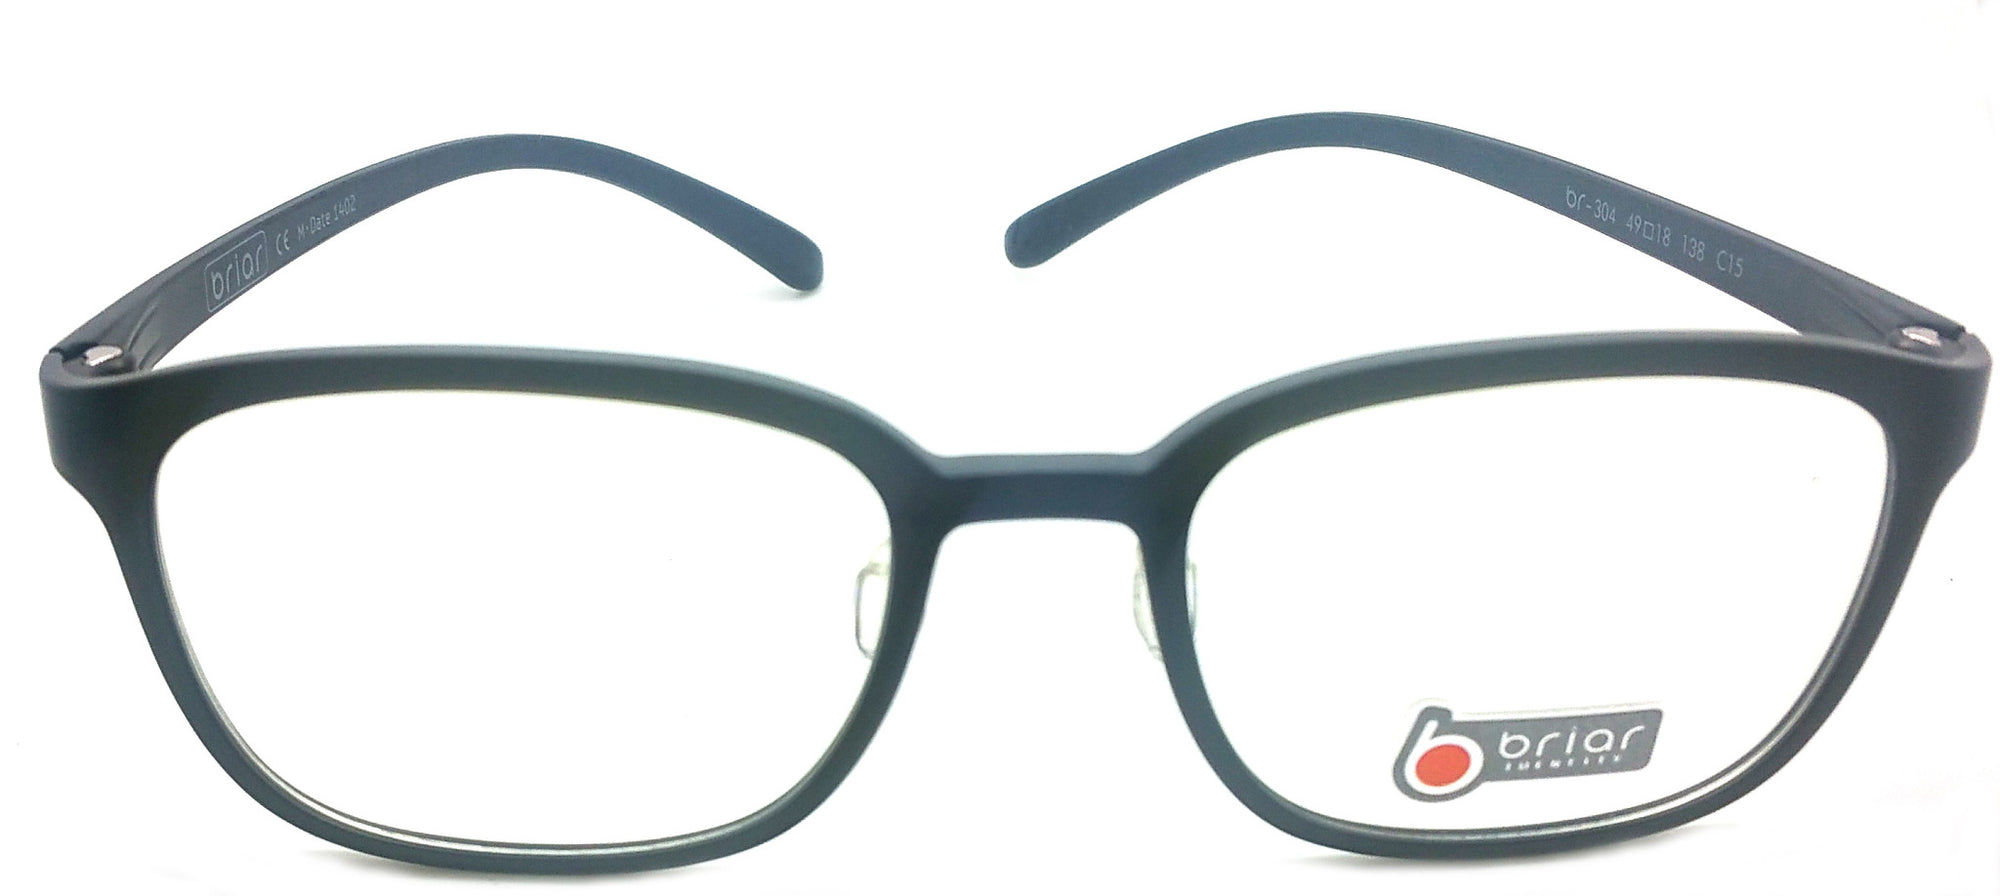 Briar Eyeglasses Prescription Frame Super Light, Flexible,  BR 304 C15